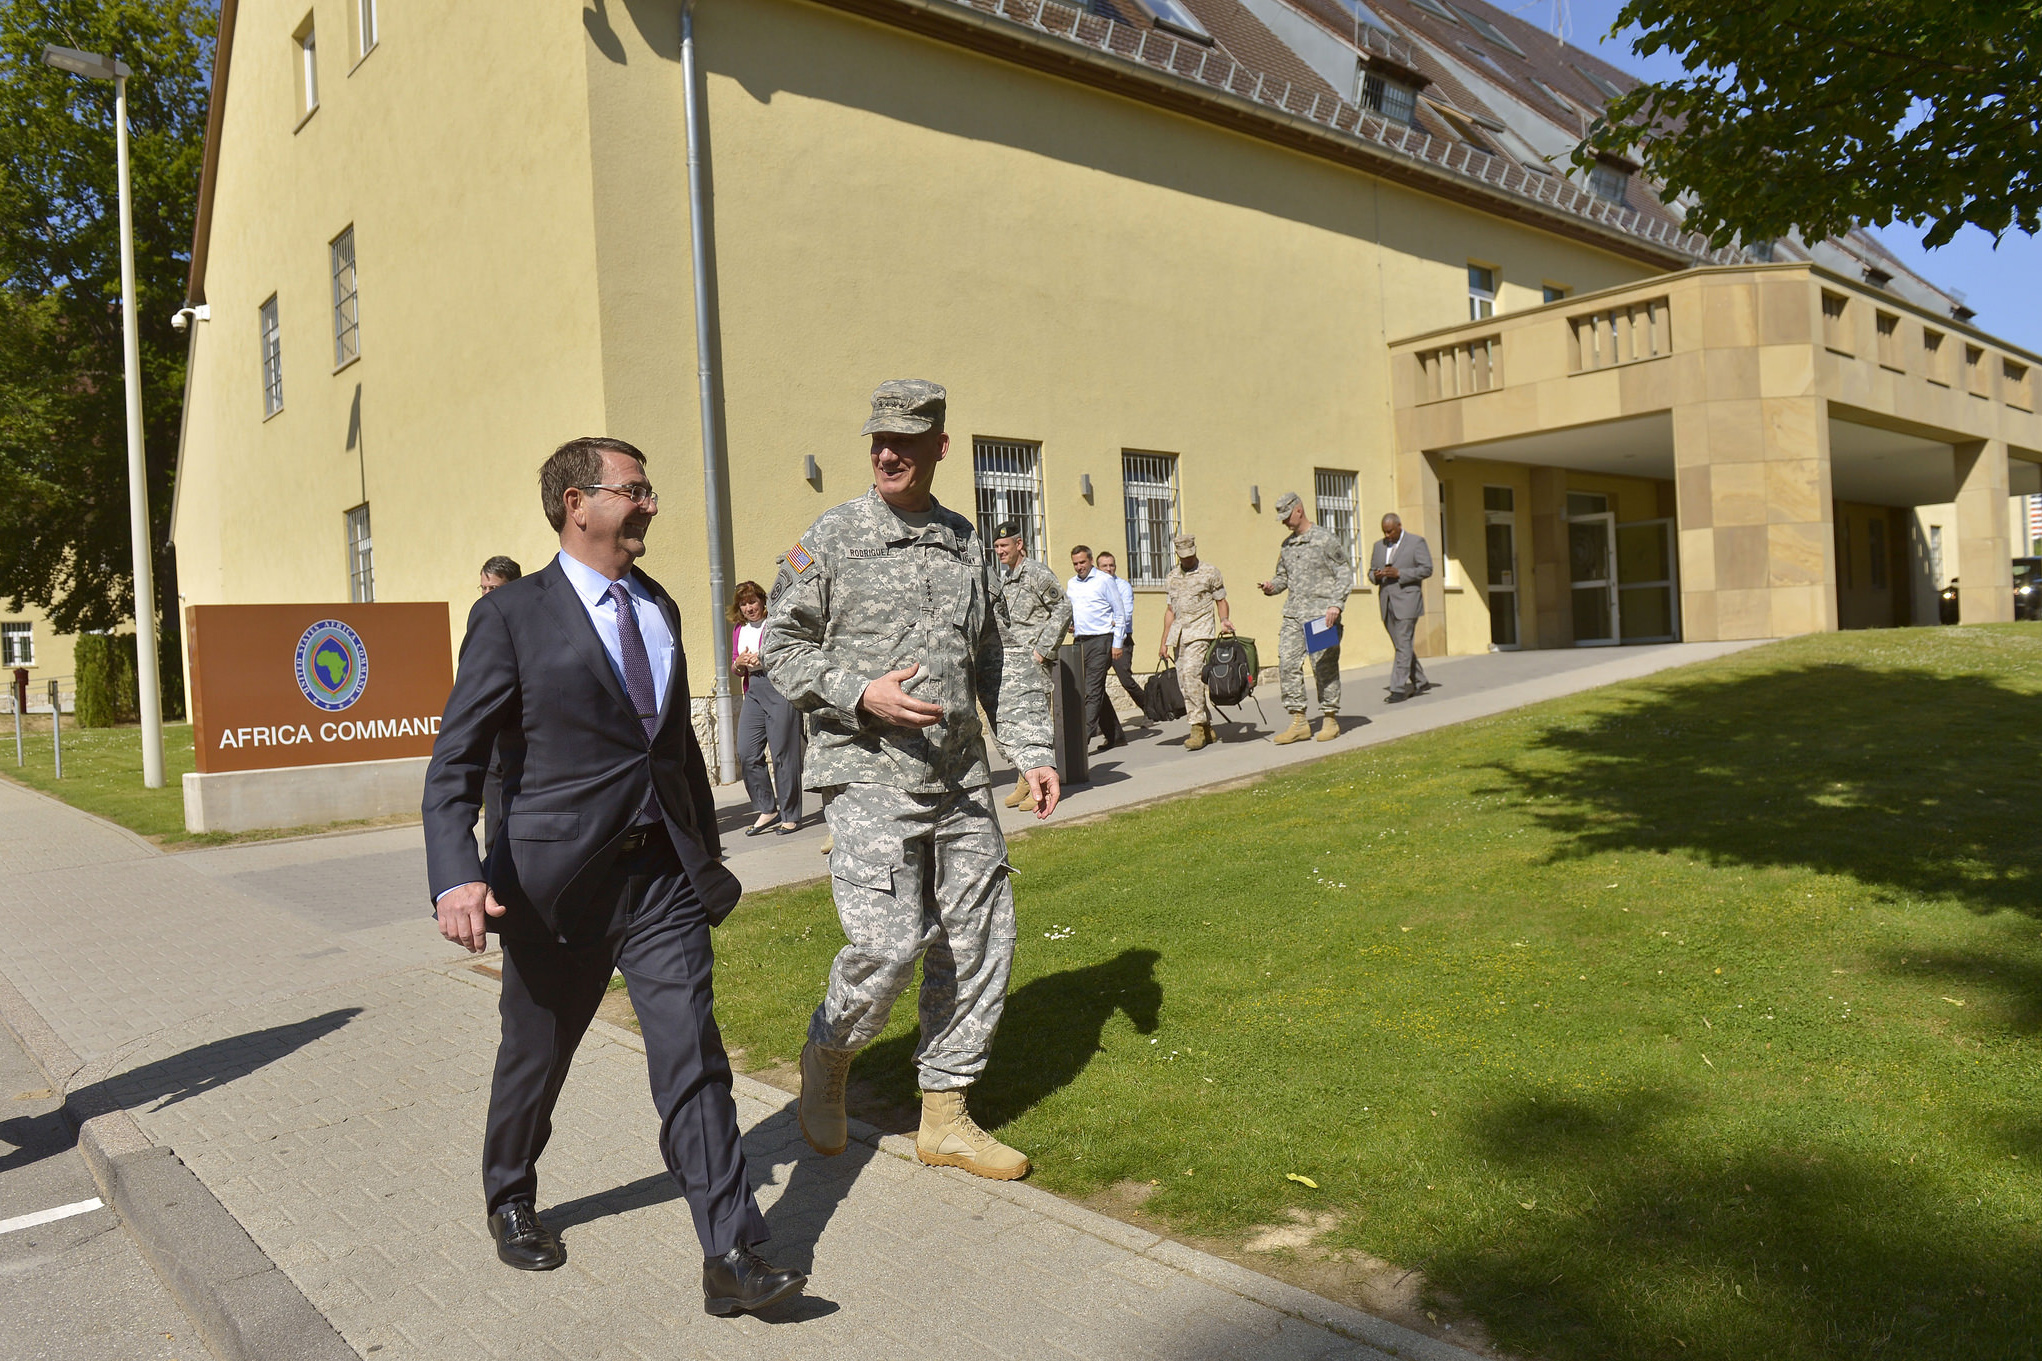 U.S. Defense Secretary Ash Carter walks with U.S. Army Gen. David M. Rodriguez, commander of U.S. Africa Command, to a troop event at the command's headquarters in Stuttgart, Germany, June 4, 2015. DoD photo by Glenn Fawcett